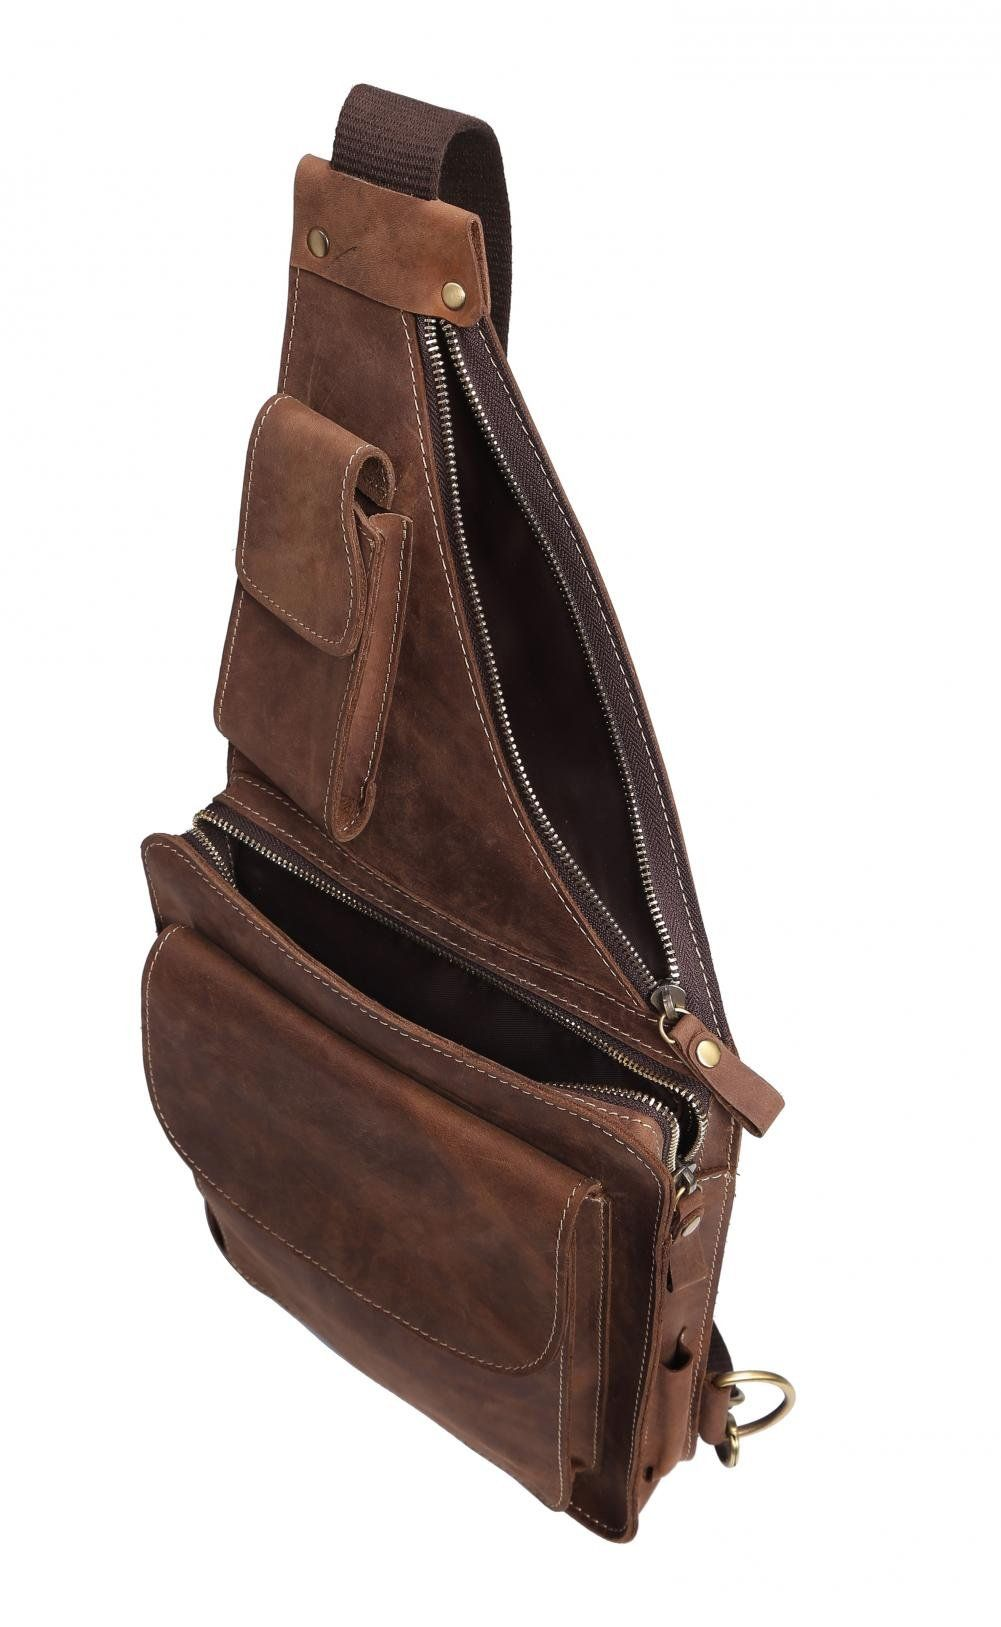 54955761b2a Amazon.com  Mens Genuine Leather Buniess Crossbody Chest Pack Sling Backpack  Shoulder Bag  Clothing